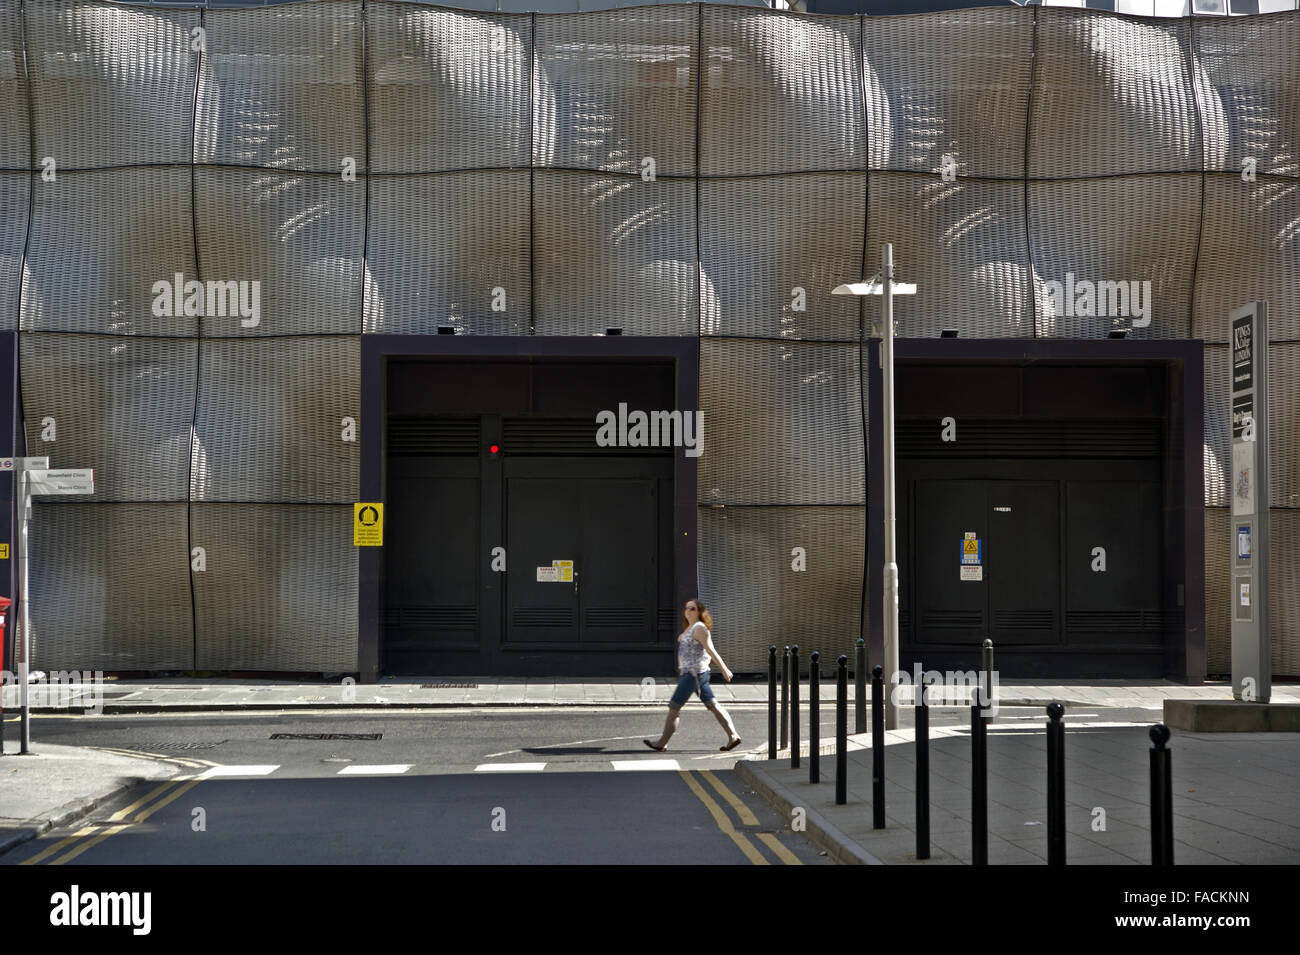 Modernist architecture building in London - Stock Image